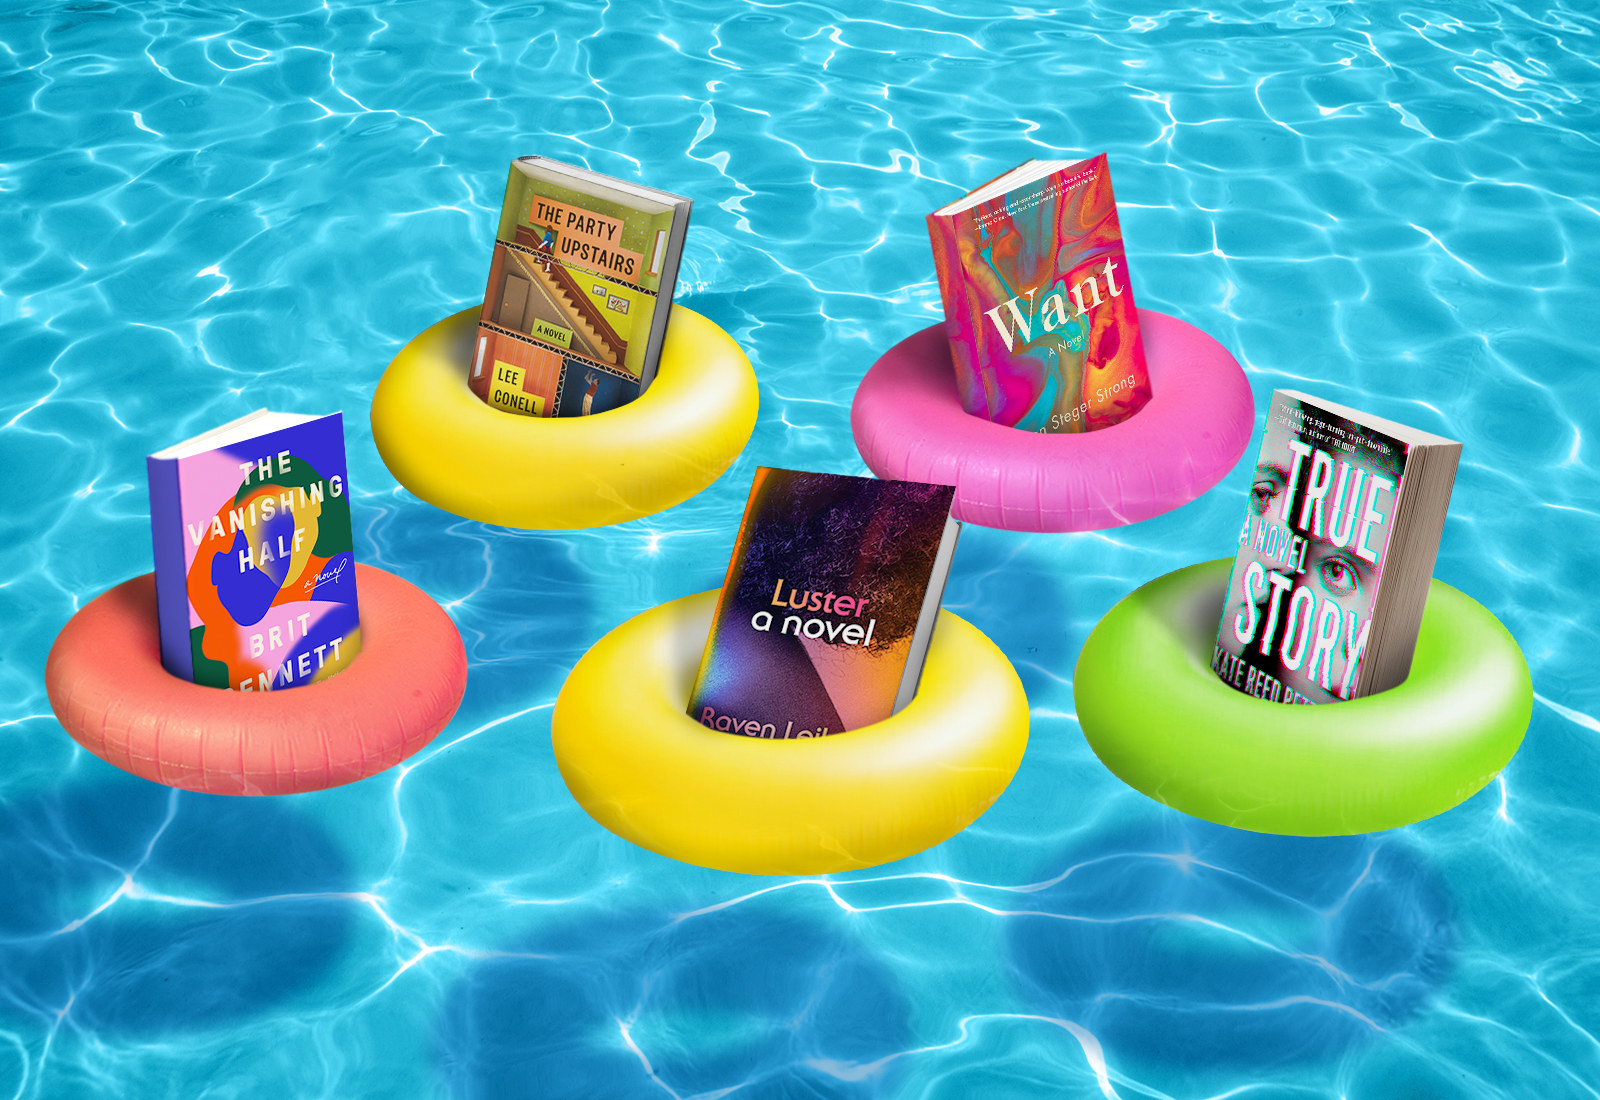 Summer books in pool floats